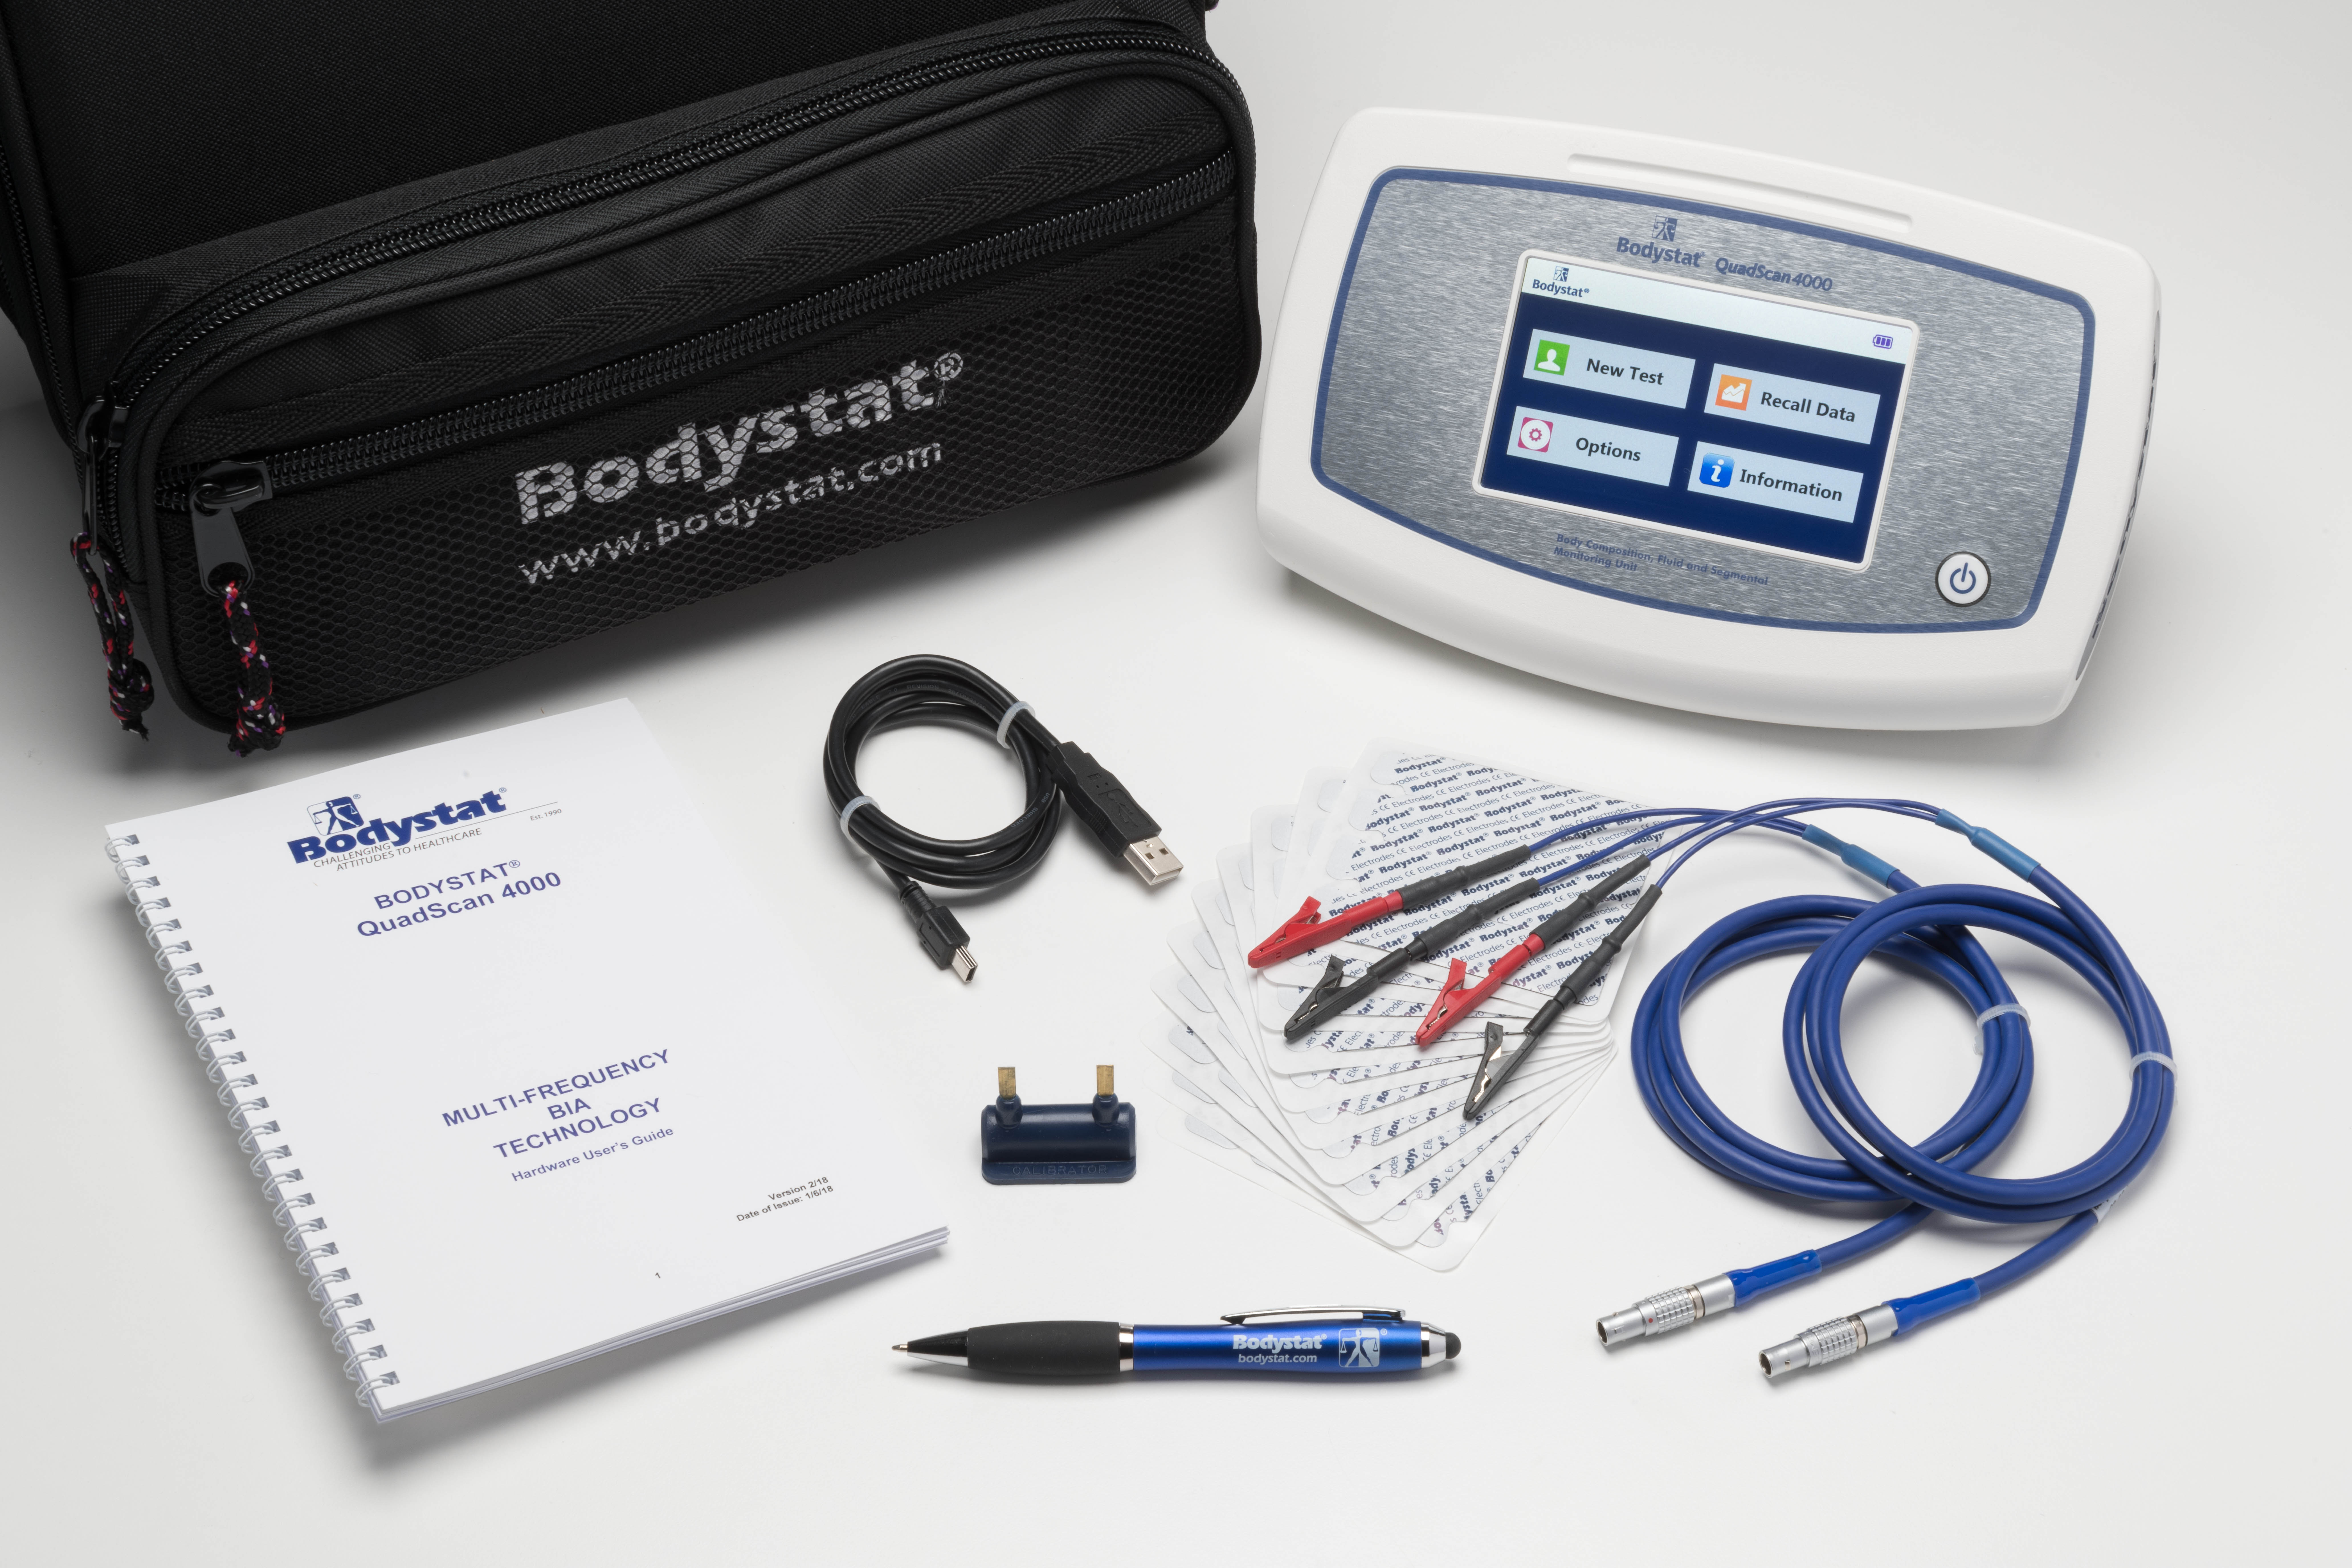 BODYSTAT QUADSCAN 4000 Touch